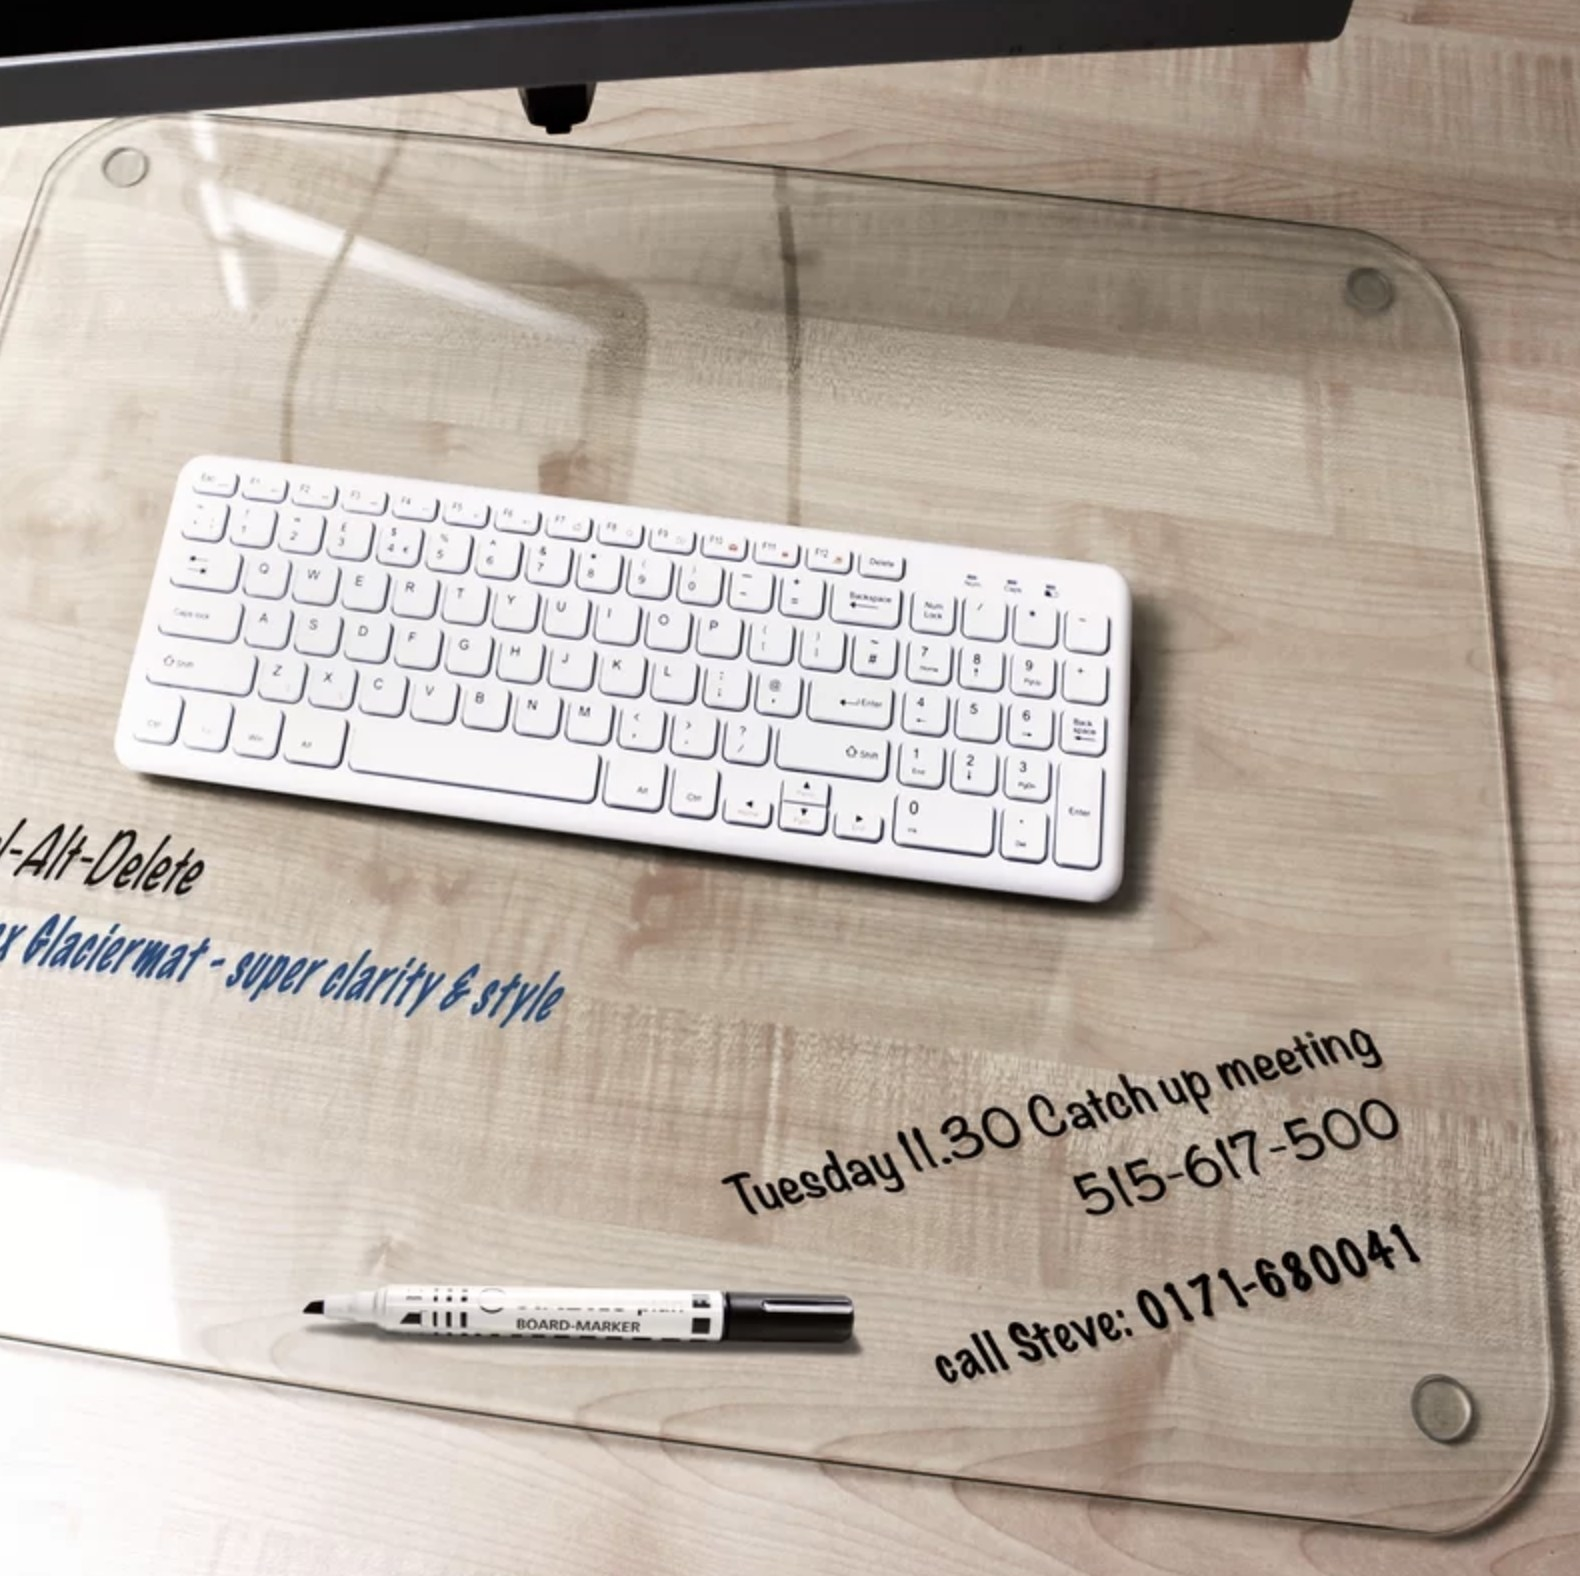 The glass desktop back with a keyboard on top